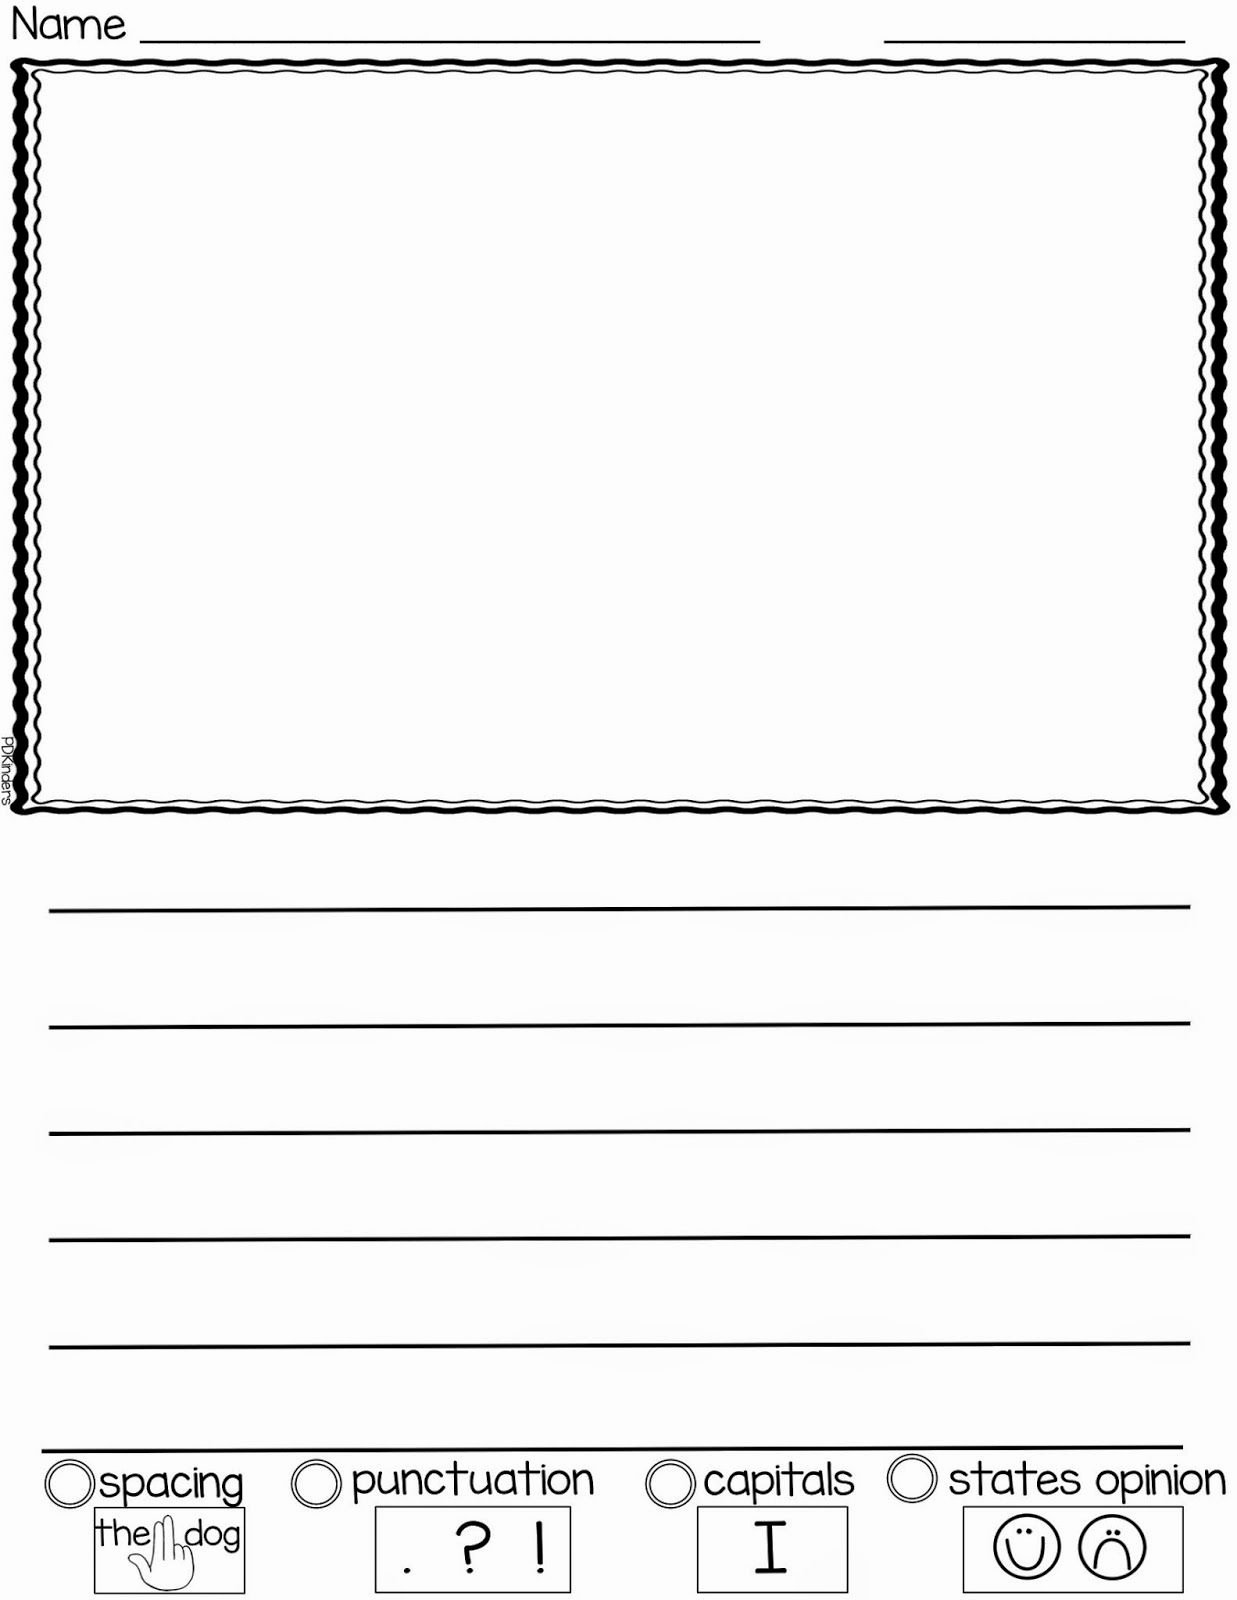 Free Lined Paper for Kindergarten New Pin by Jennifer Hoelscher On School